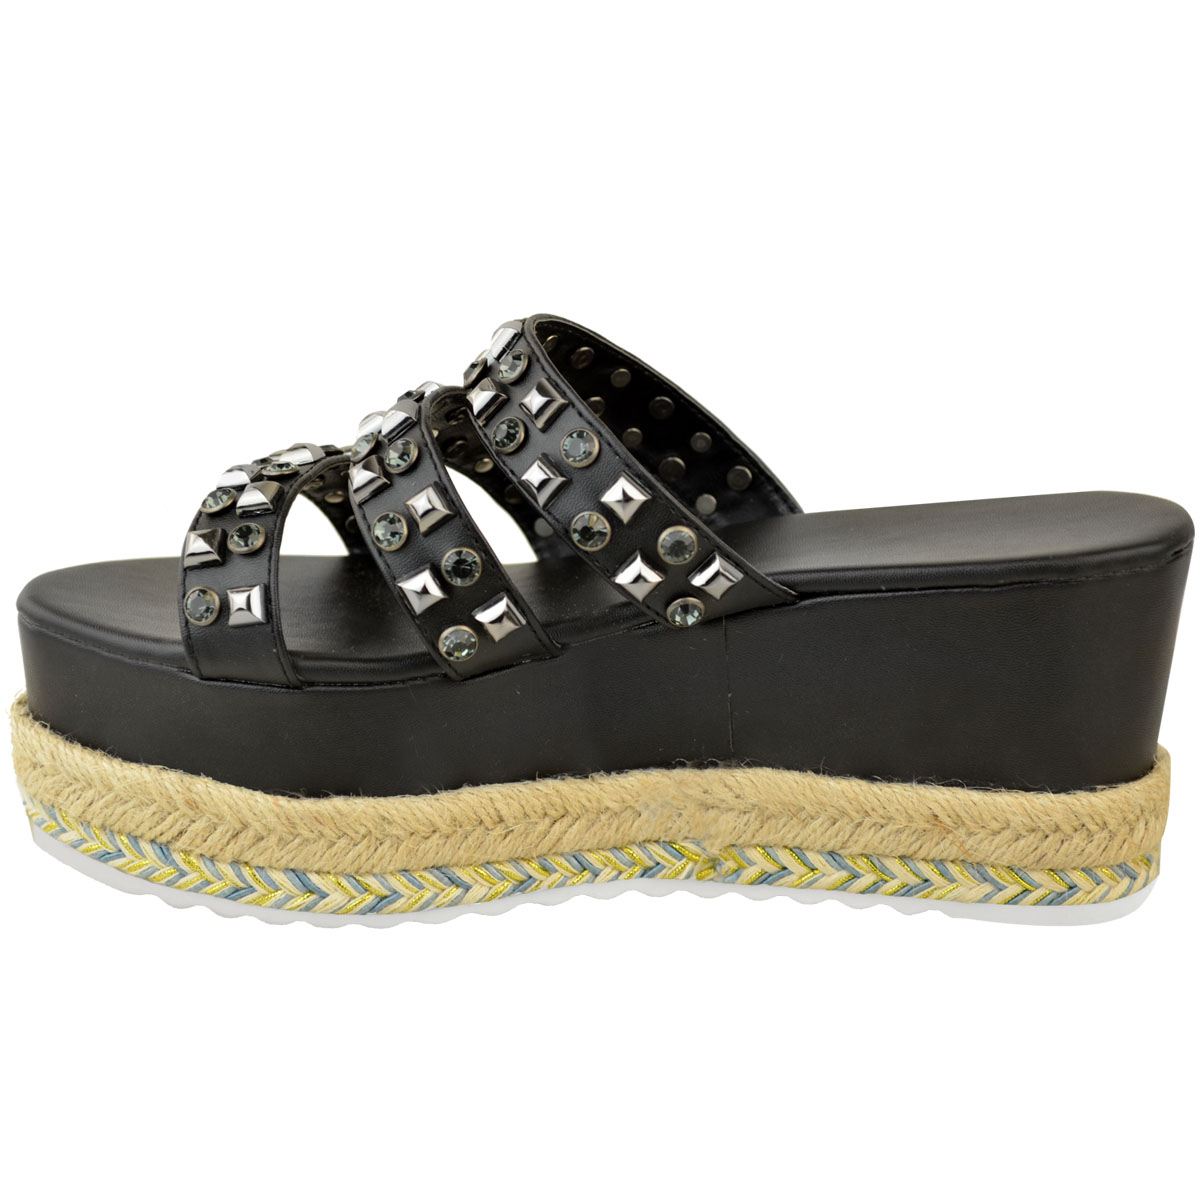 Womens-Ladies-Flatforms-Sandals-Espadrilles-Embellished-Stud-Jewel-Wedges-Size thumbnail 4